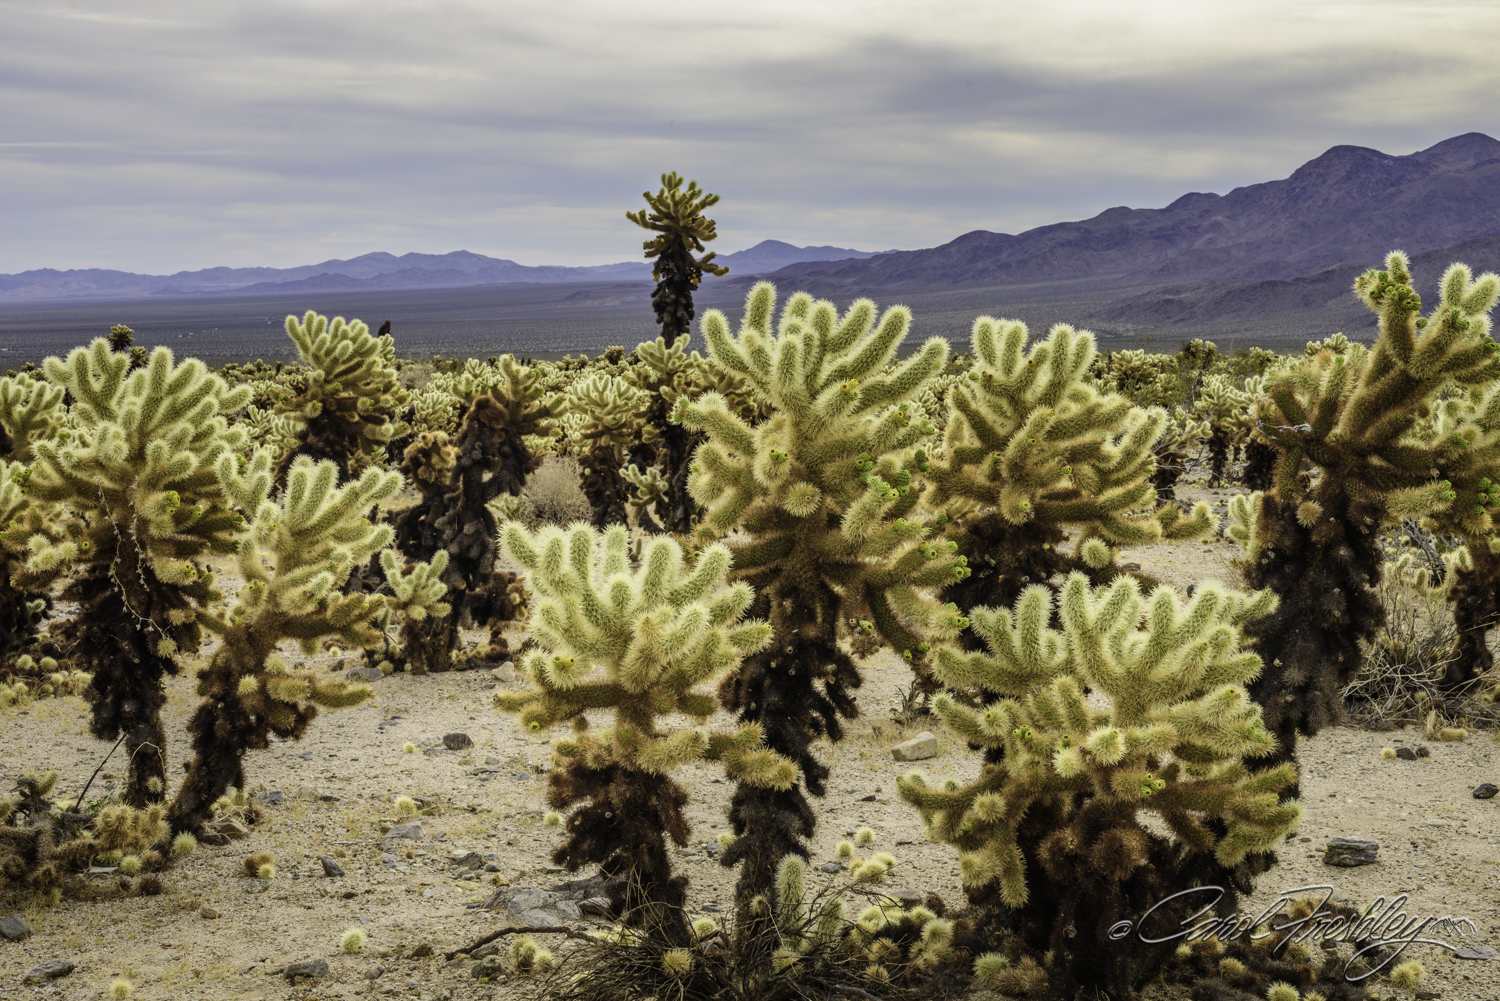 Leaving one ecosystem with Joshua Trees and getting into the Cholla Garden.